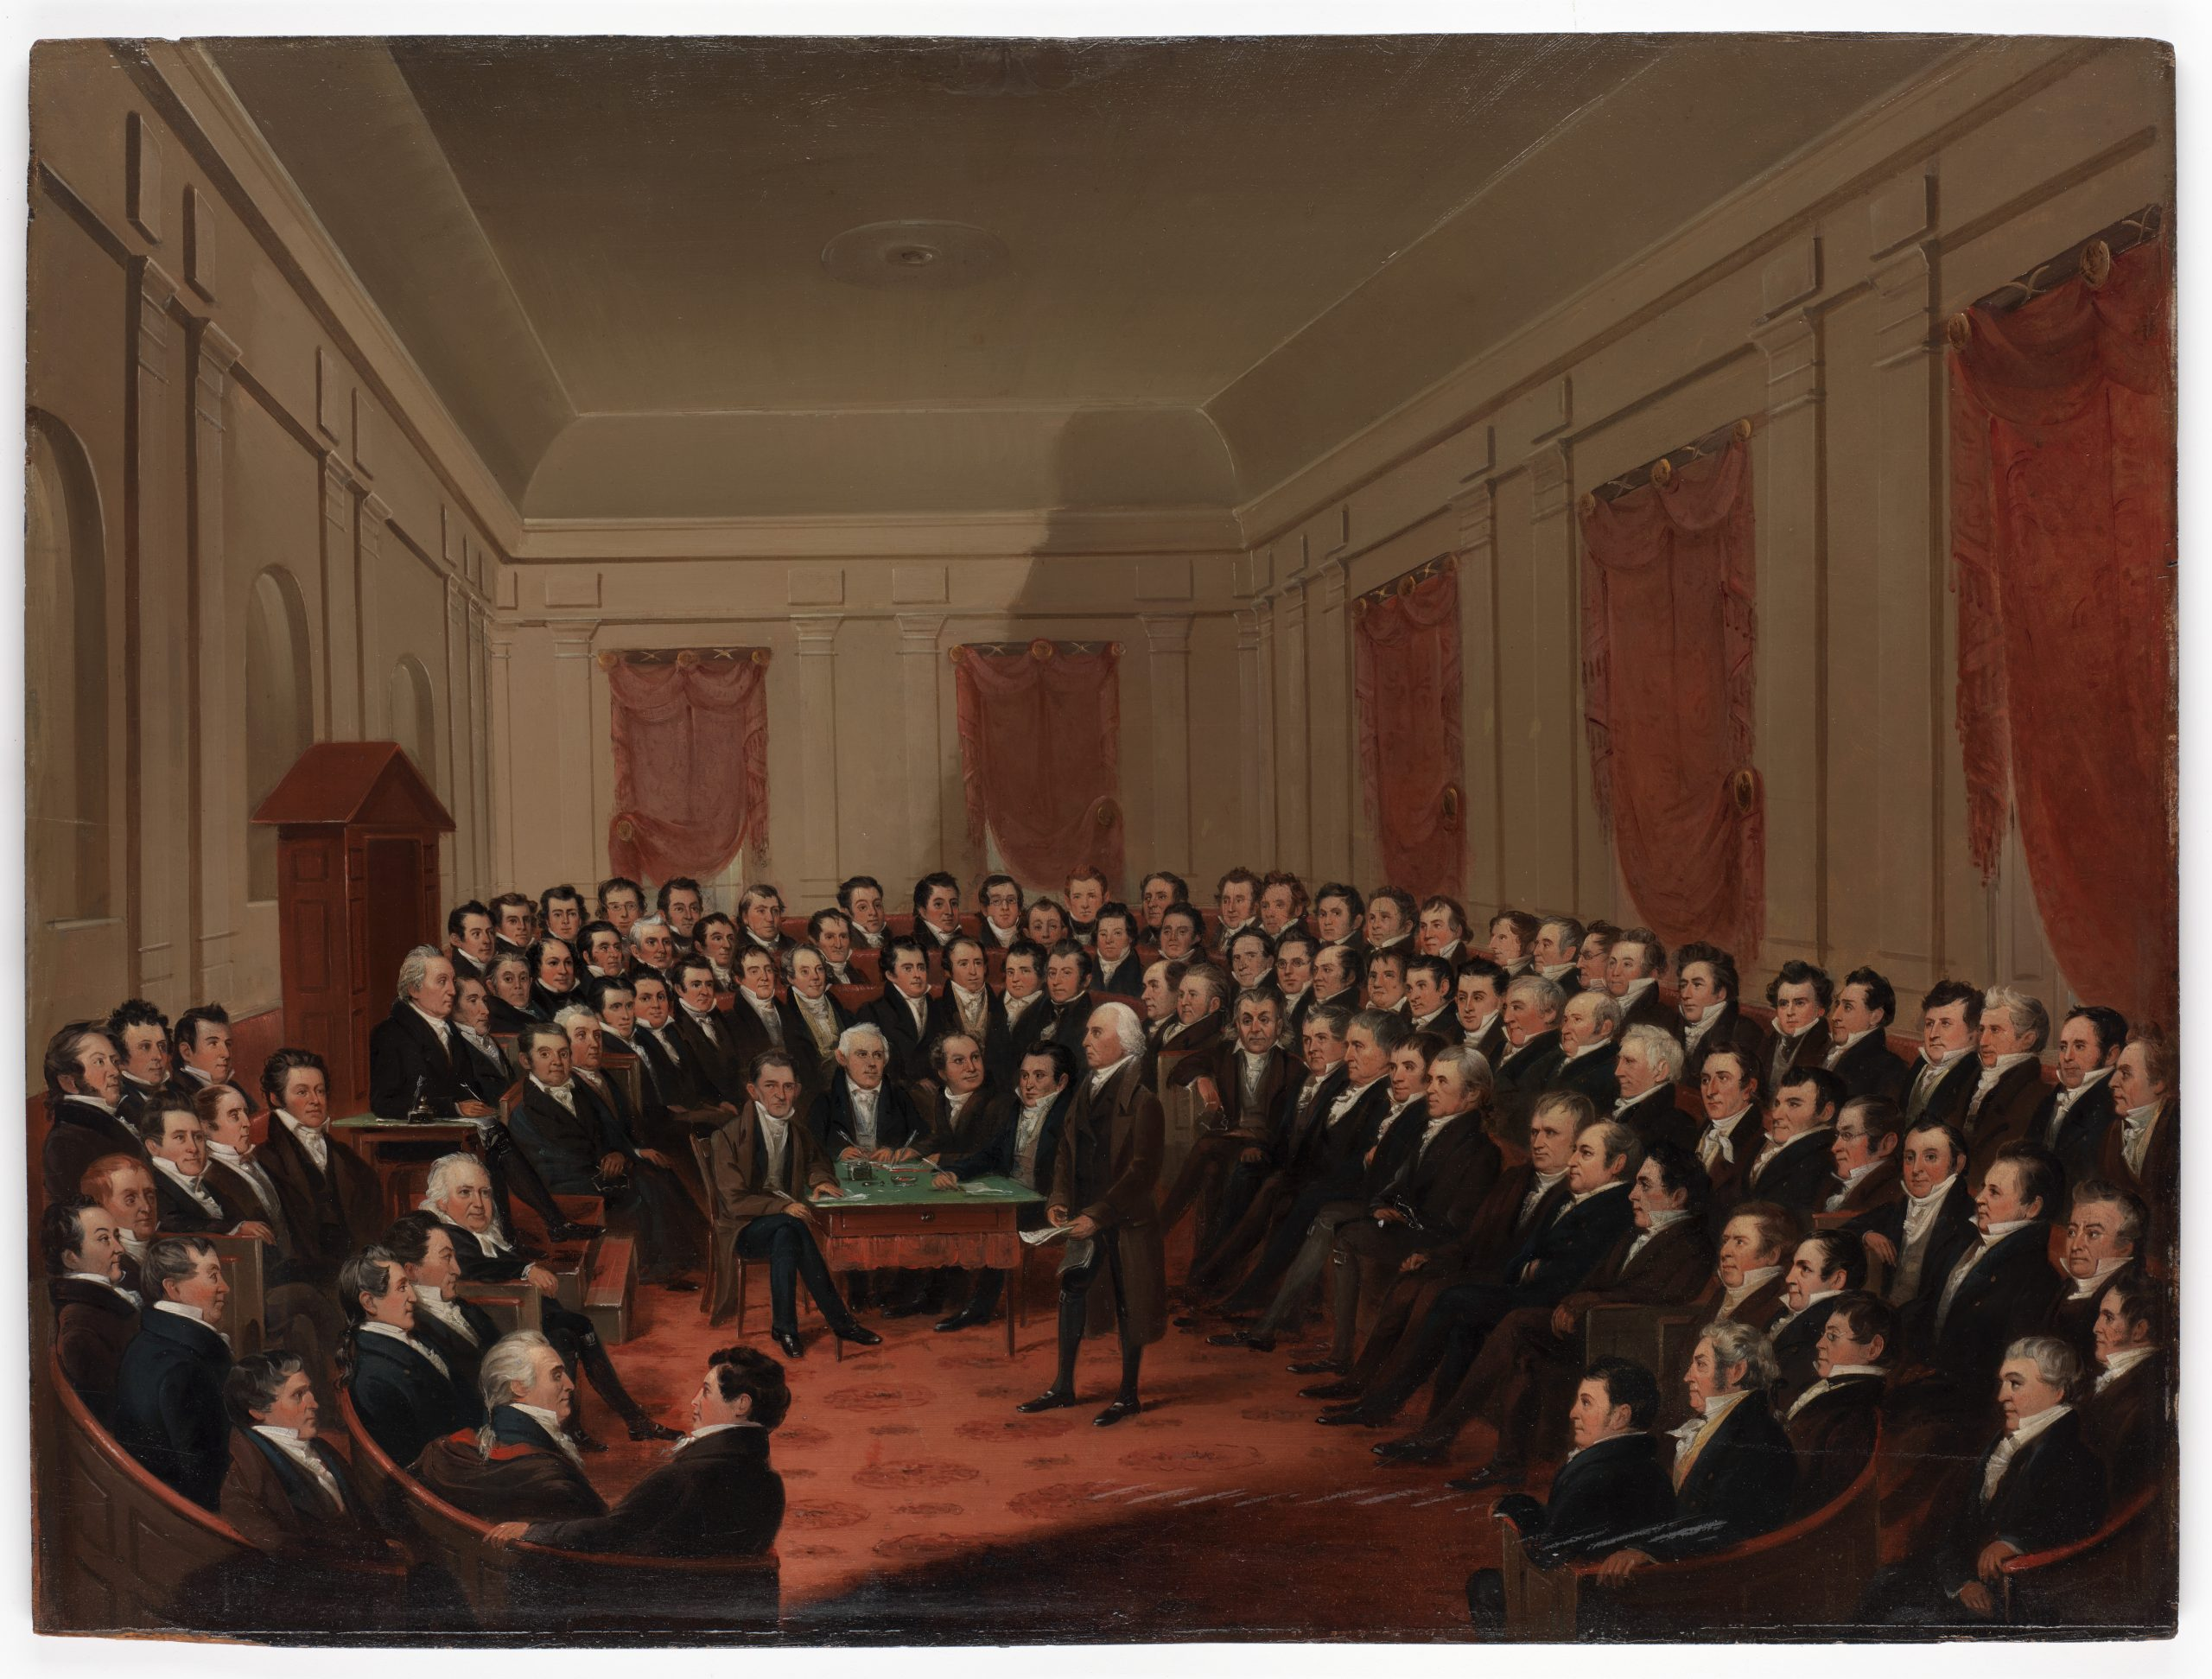 Painting, Virginia [Constitutional] Convention of 1829- 1830 by George Catlin.